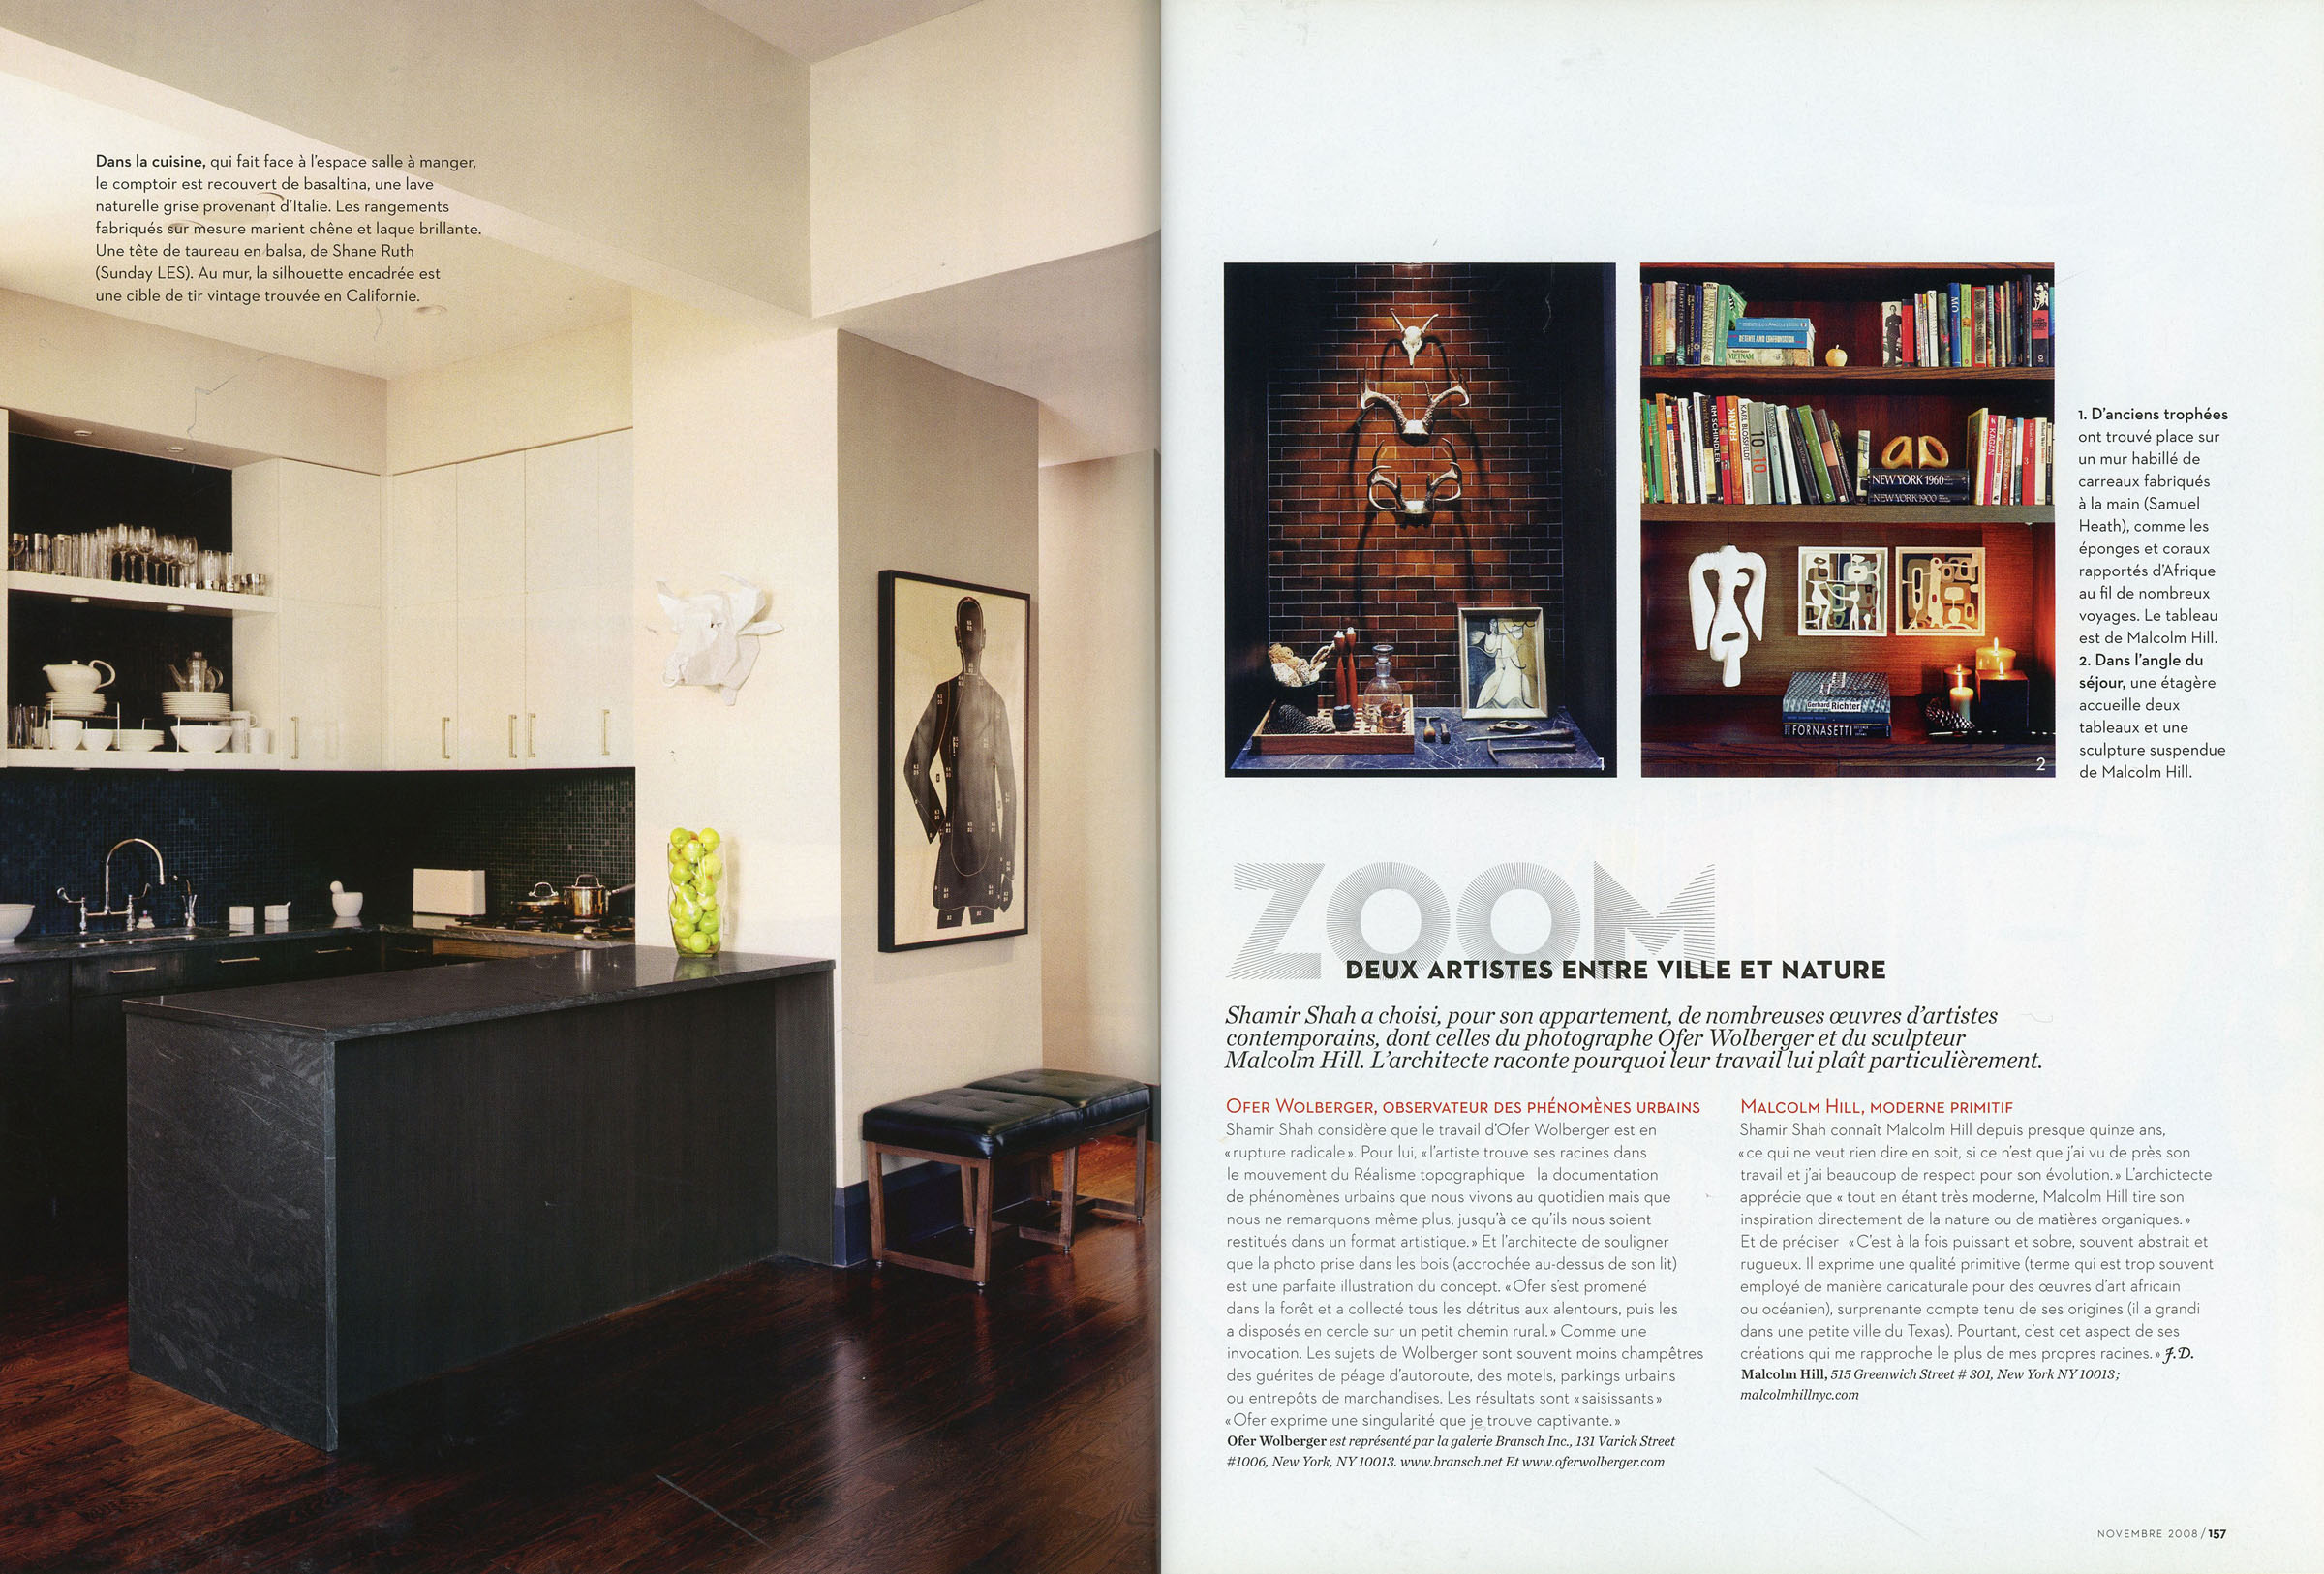 Pages from AD France_2008-5.jpg